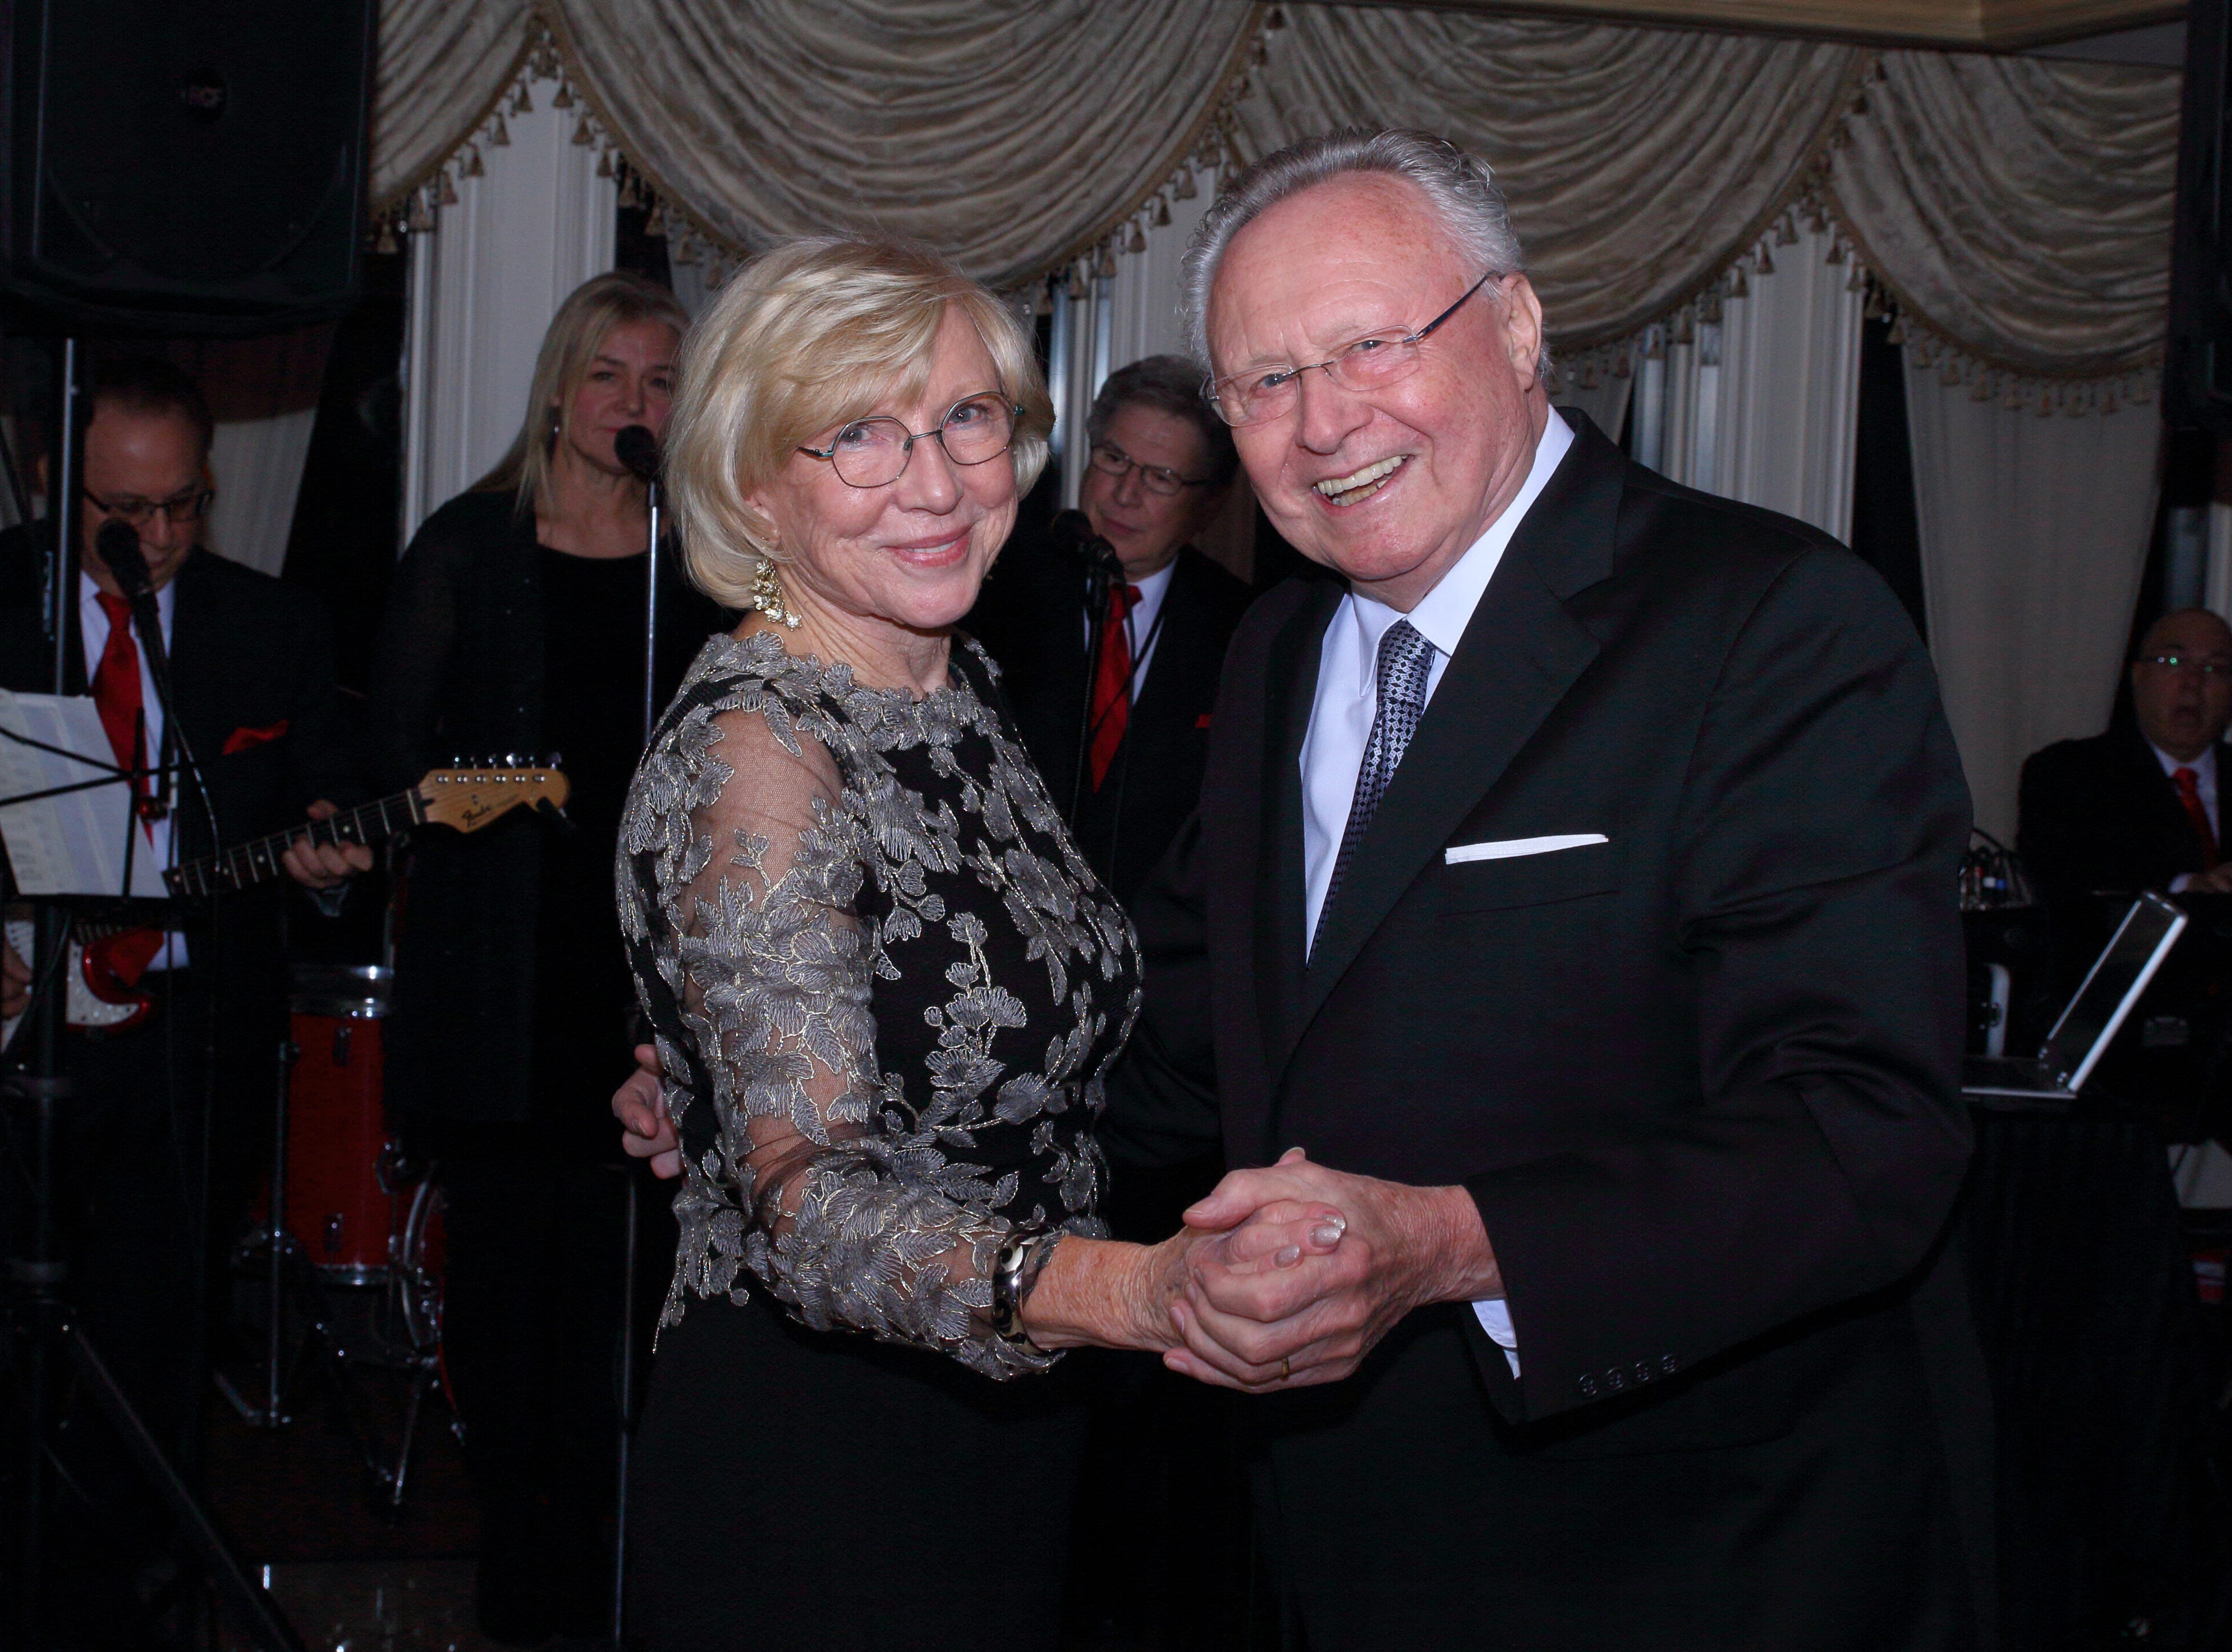 Rosemarie and Helmut Habicht. The Saddle River Valley Club held its annual Holiday Gala celebration at Seasons in Washington Township. 11/30/2018